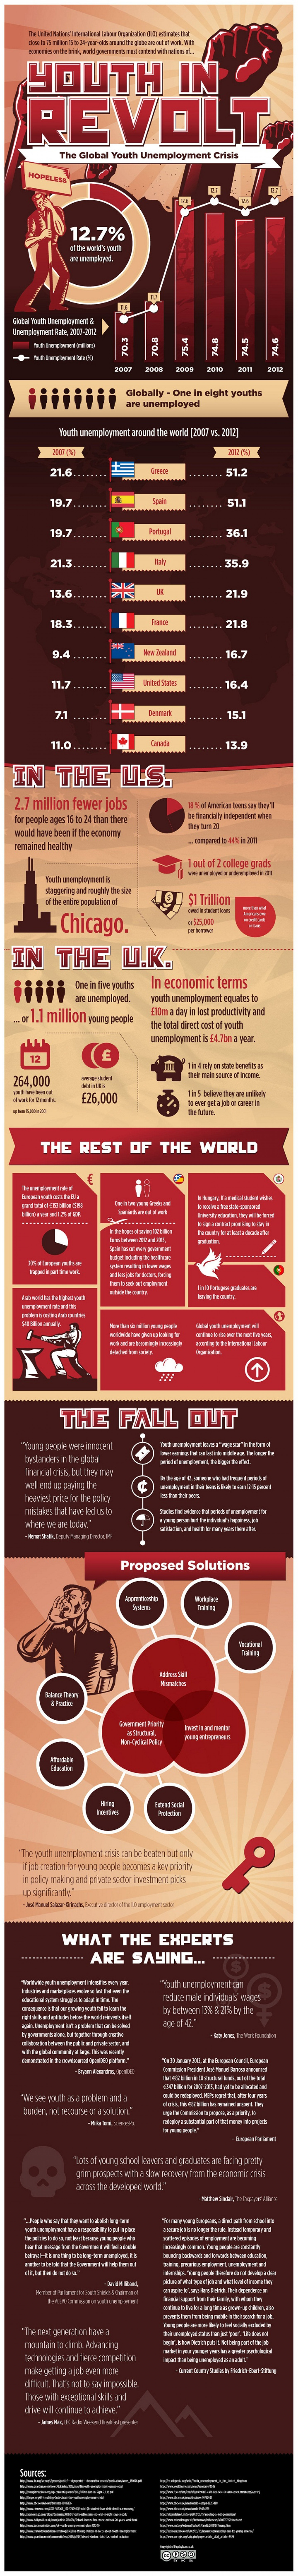 Youth in Revolt: The Global Youth Unemployment Crisis Infographic